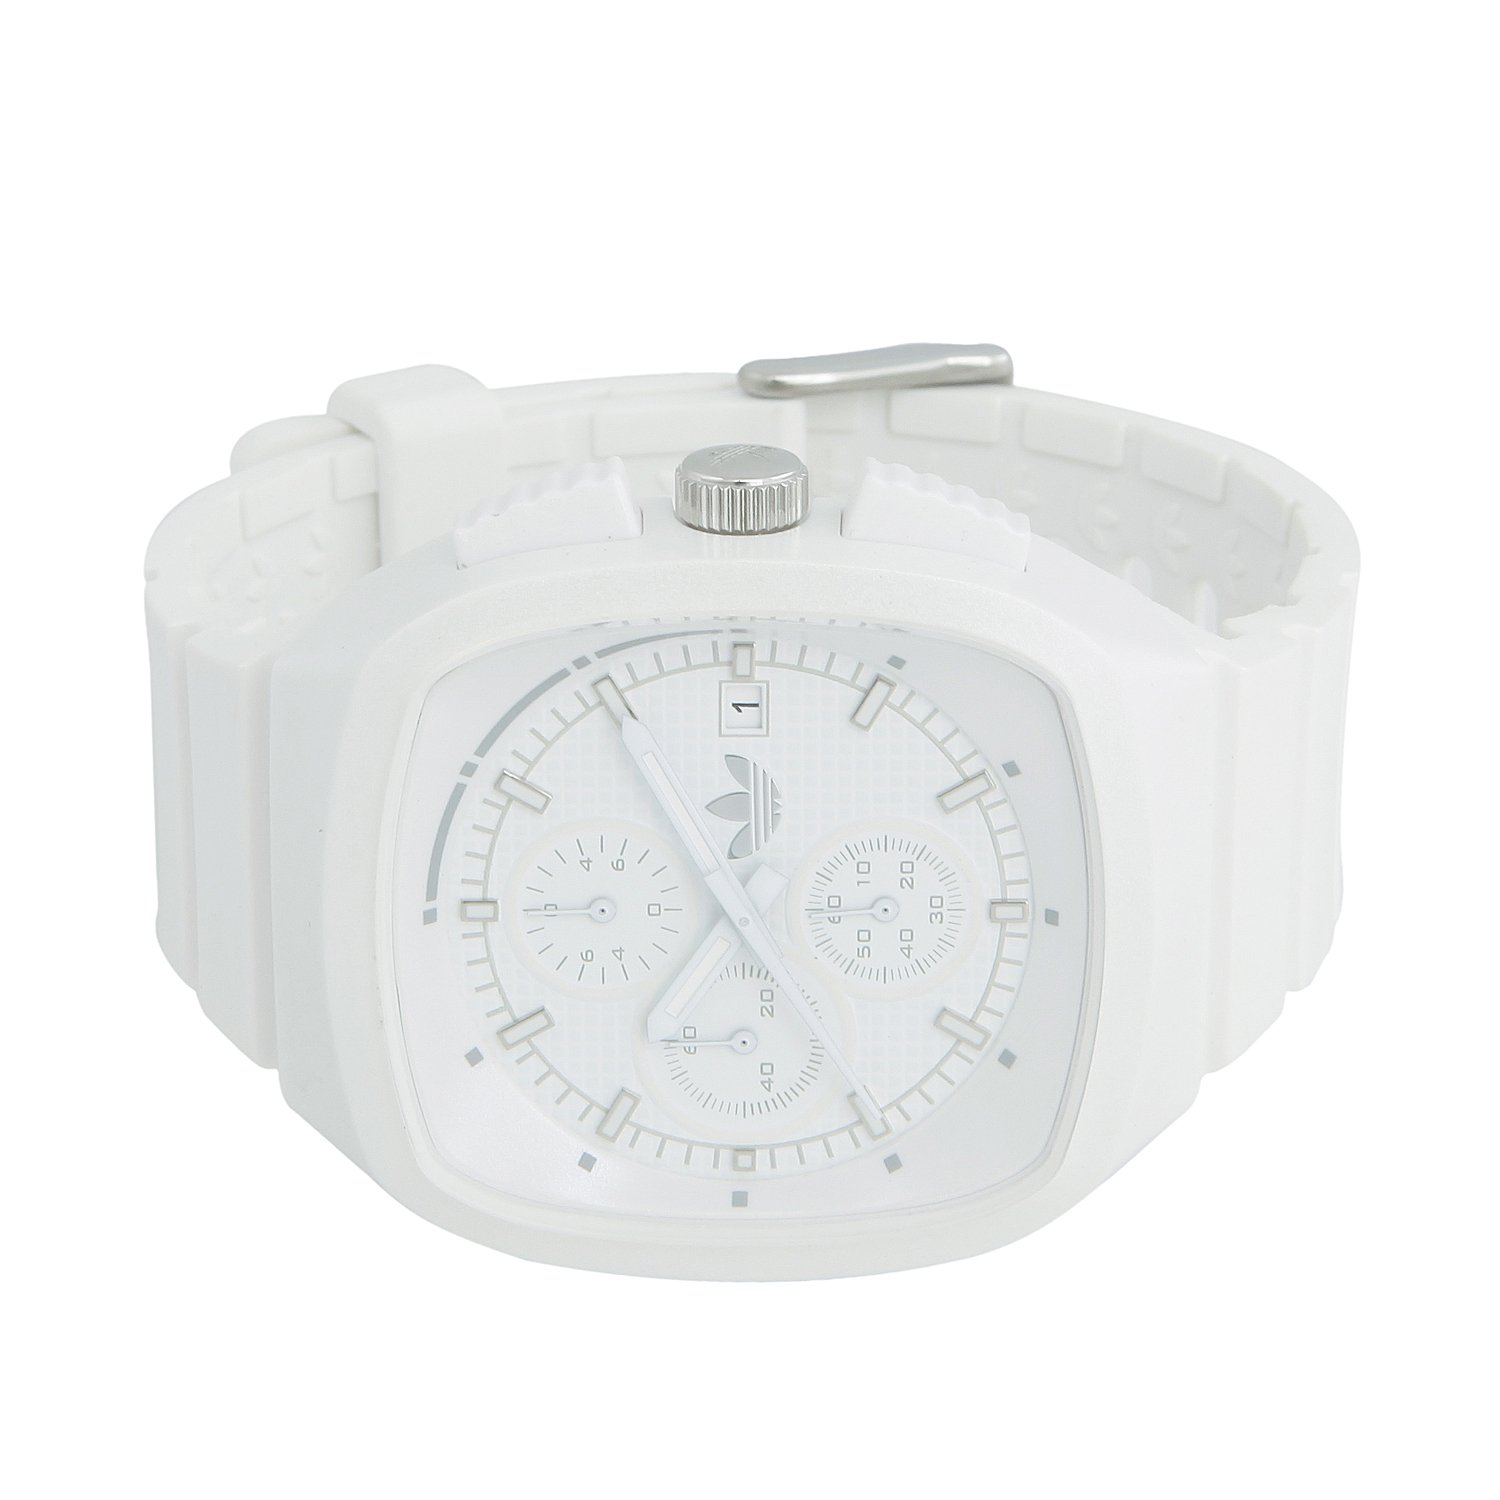 Amazon.com: Adidas Toronto Originals White Chronograph Unisex Watch ADH2122: Adidas: Watches